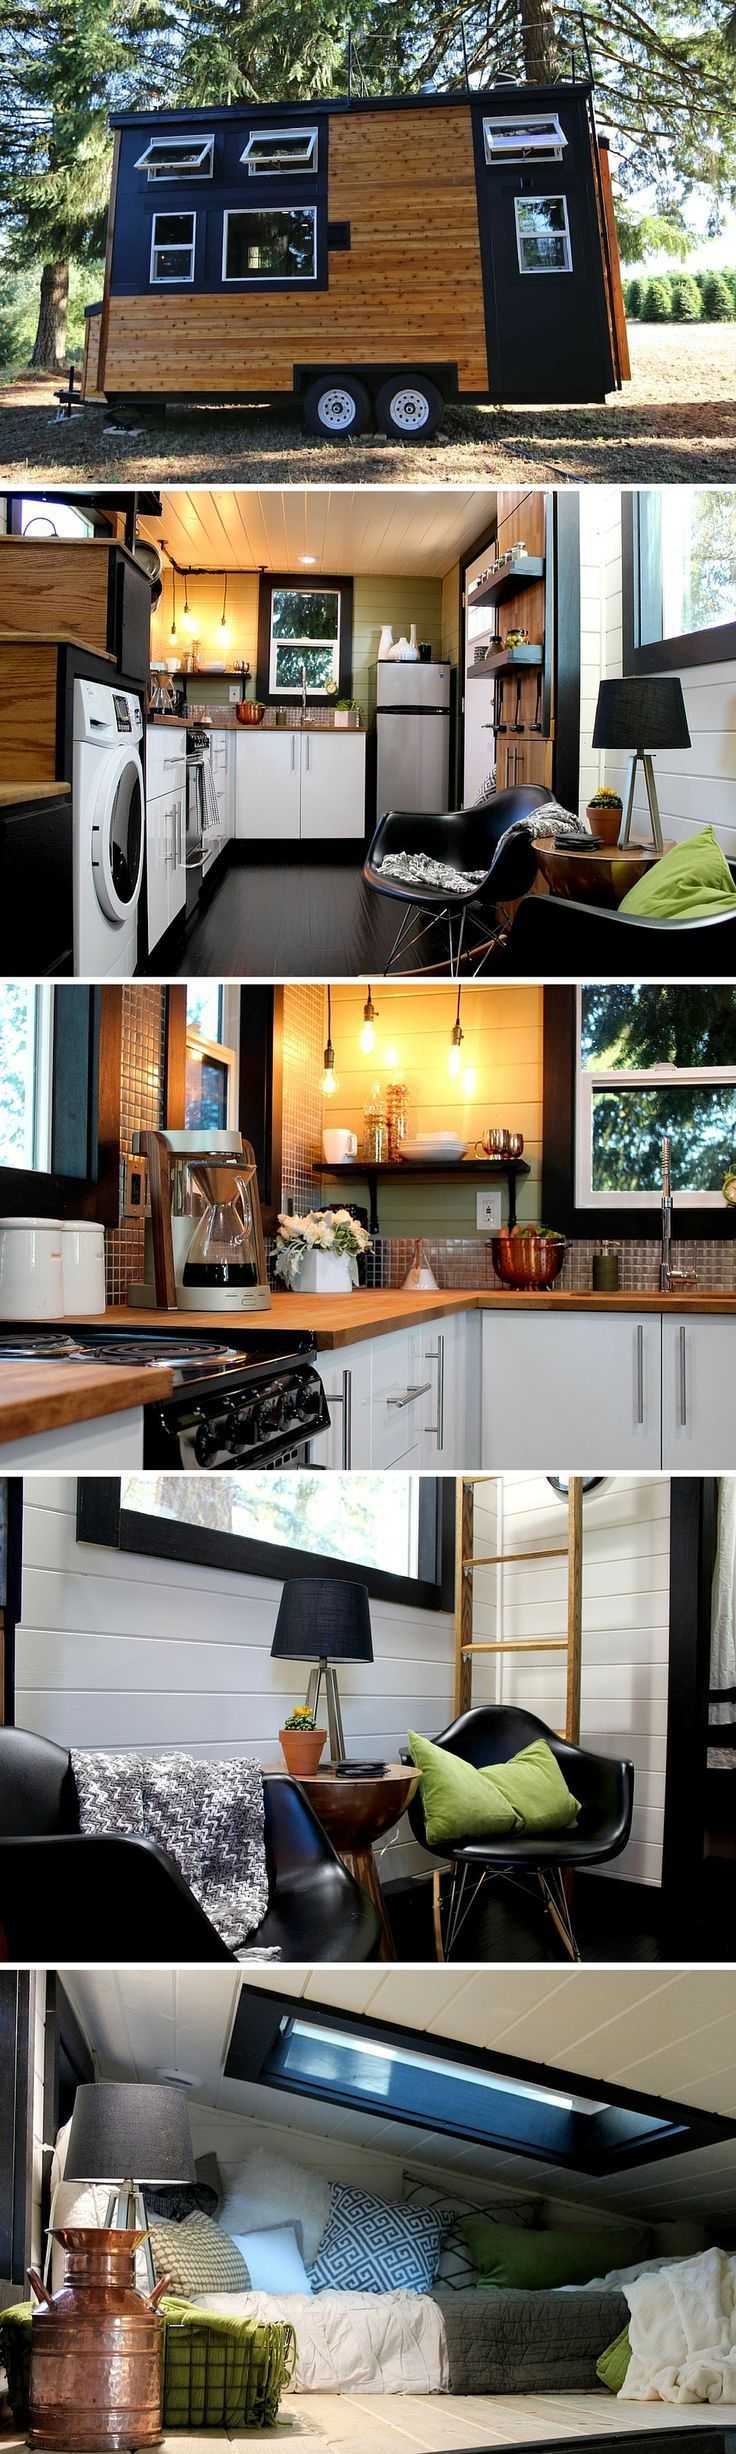 25 b sta fraktcontainrar id erna p pinterest container hus containerbost der och containerhem - Container homes portland oregon ...